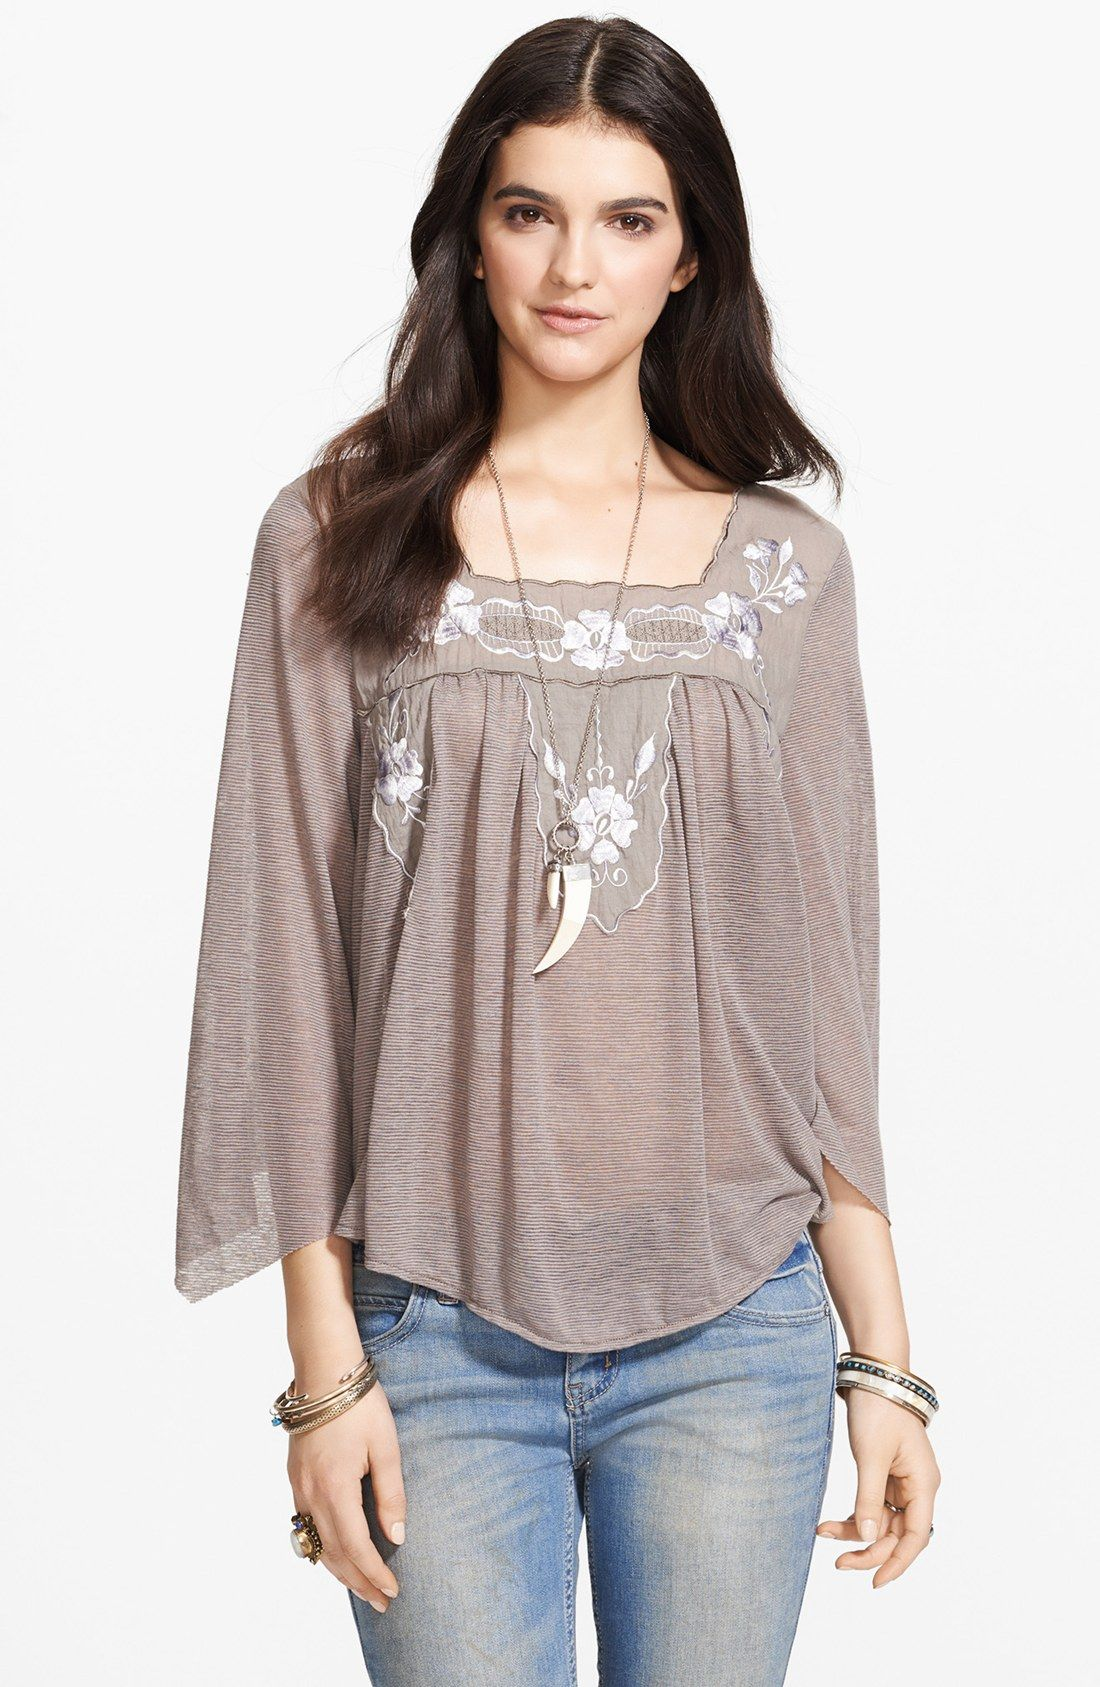 aea9bfc7674413 embroidery crochet peasant tops - Google Search | dress | Peasant ...